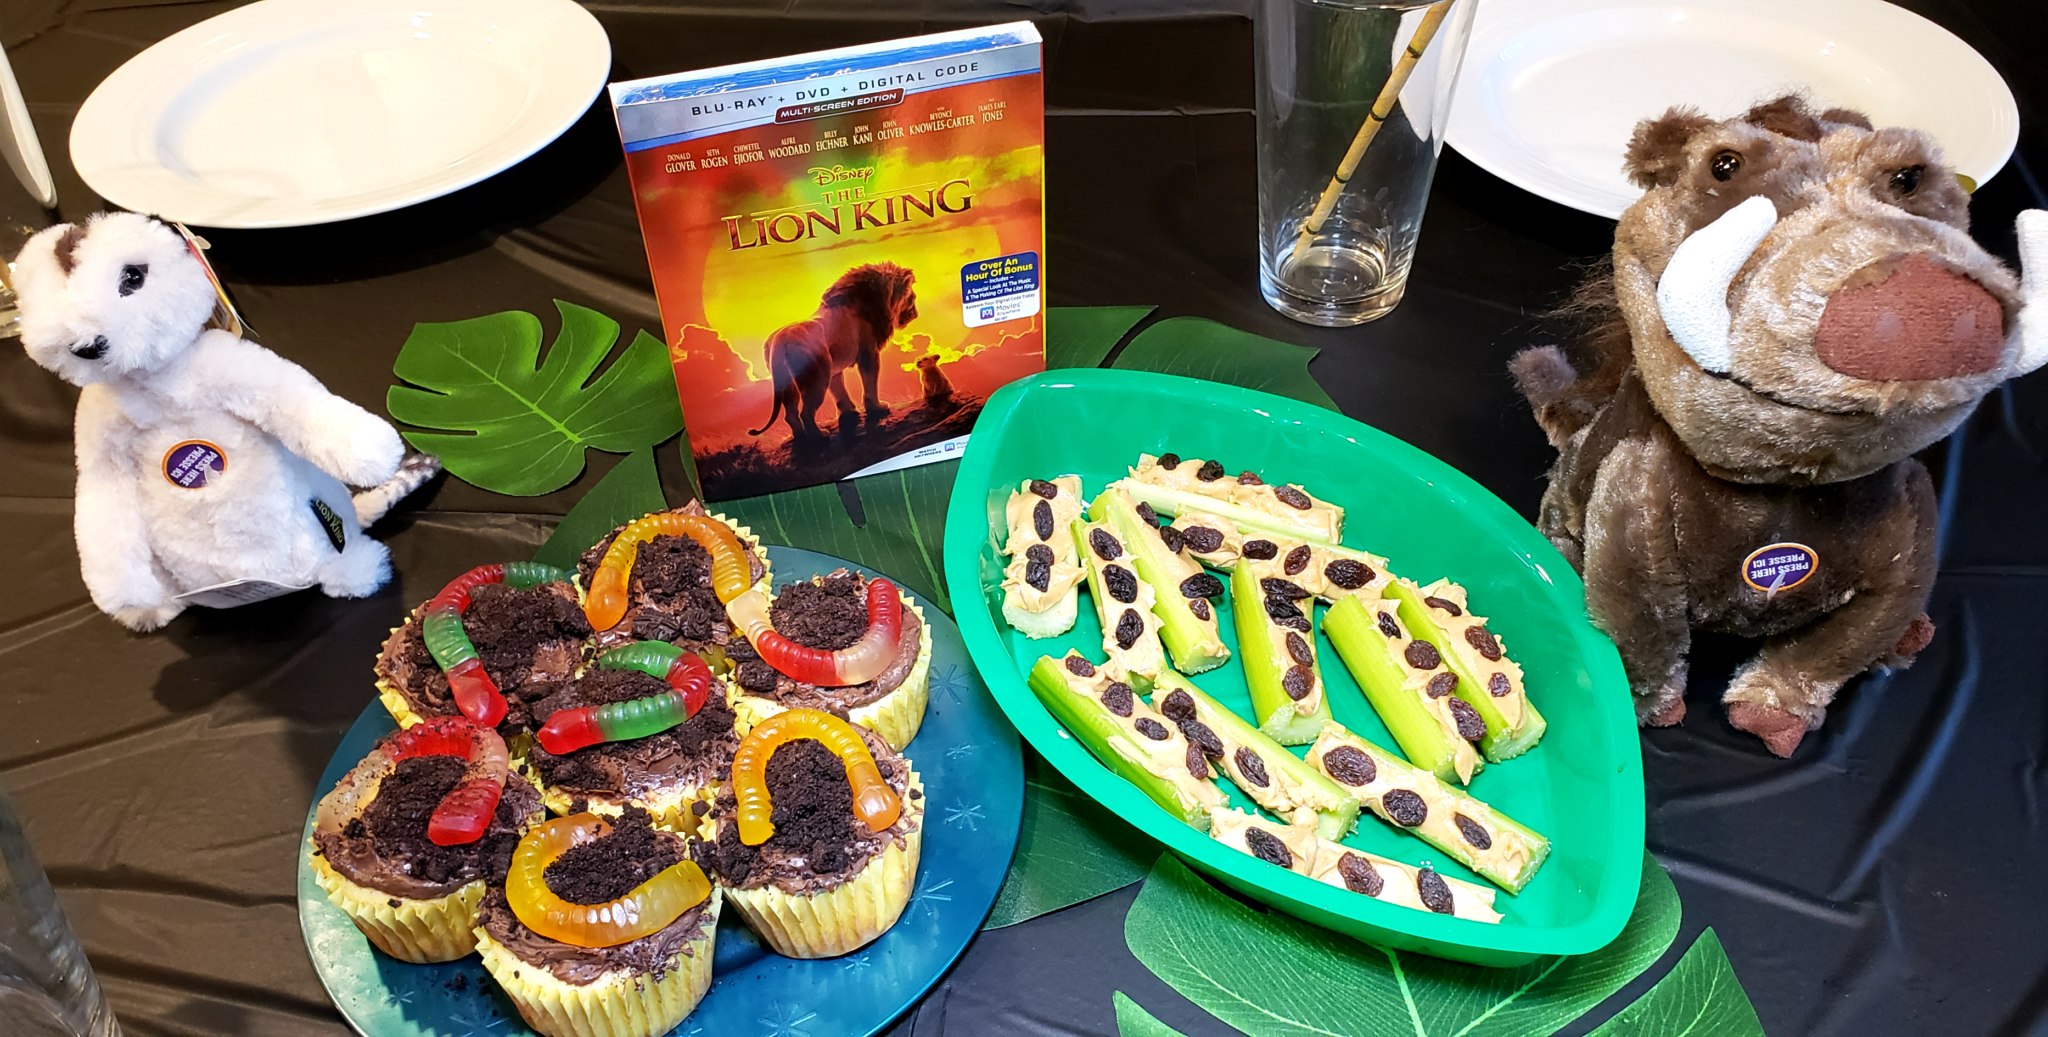 Pumba and Timon Inspired Lion King Snacks